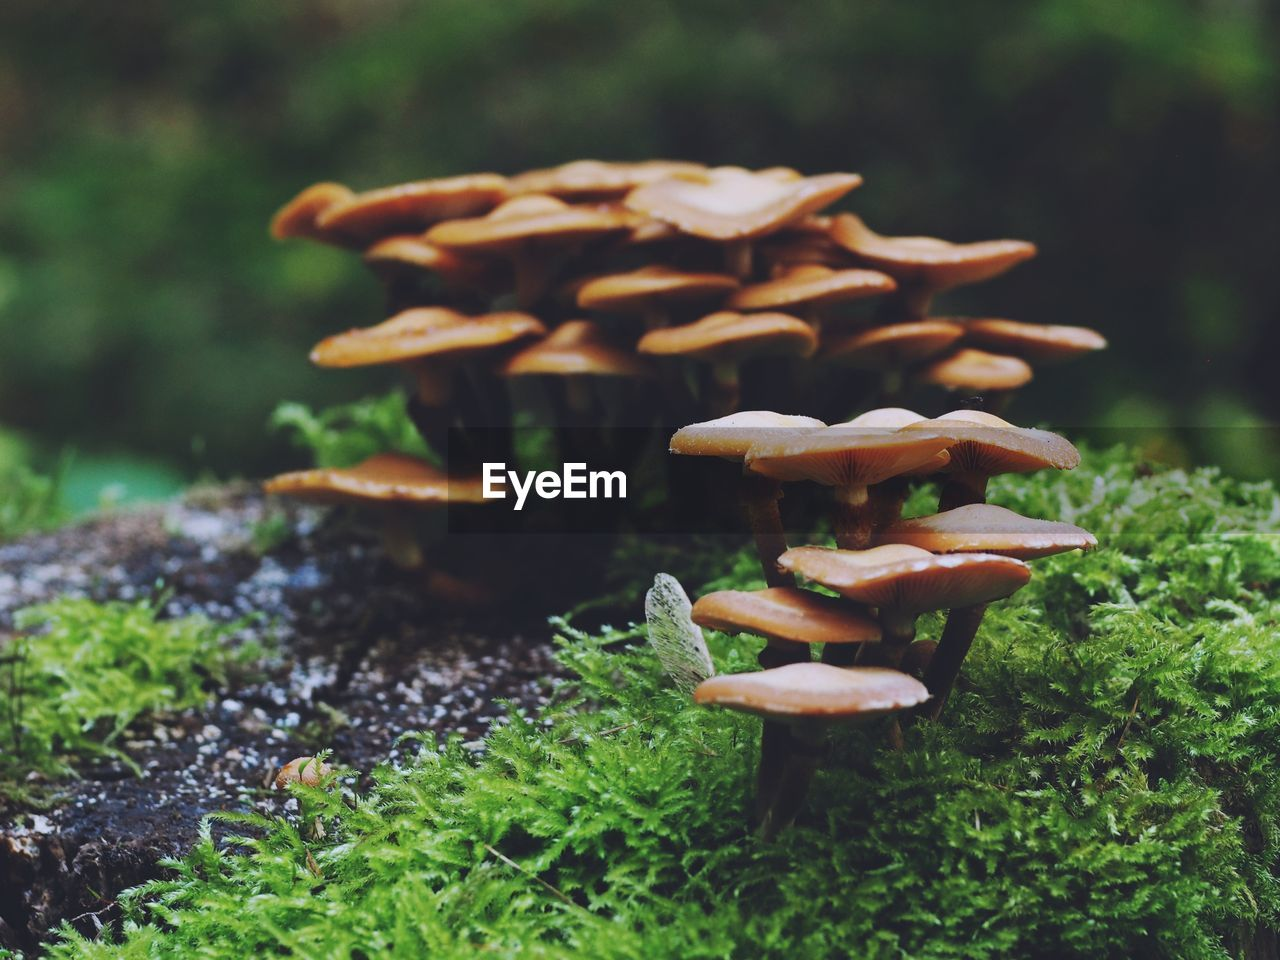 food, vegetable, mushroom, growth, no people, close-up, freshness, fungus, food and drink, toadstool, plant, focus on foreground, day, nature, green color, beauty in nature, field, land, edible mushroom, selective focus, surface level, snack